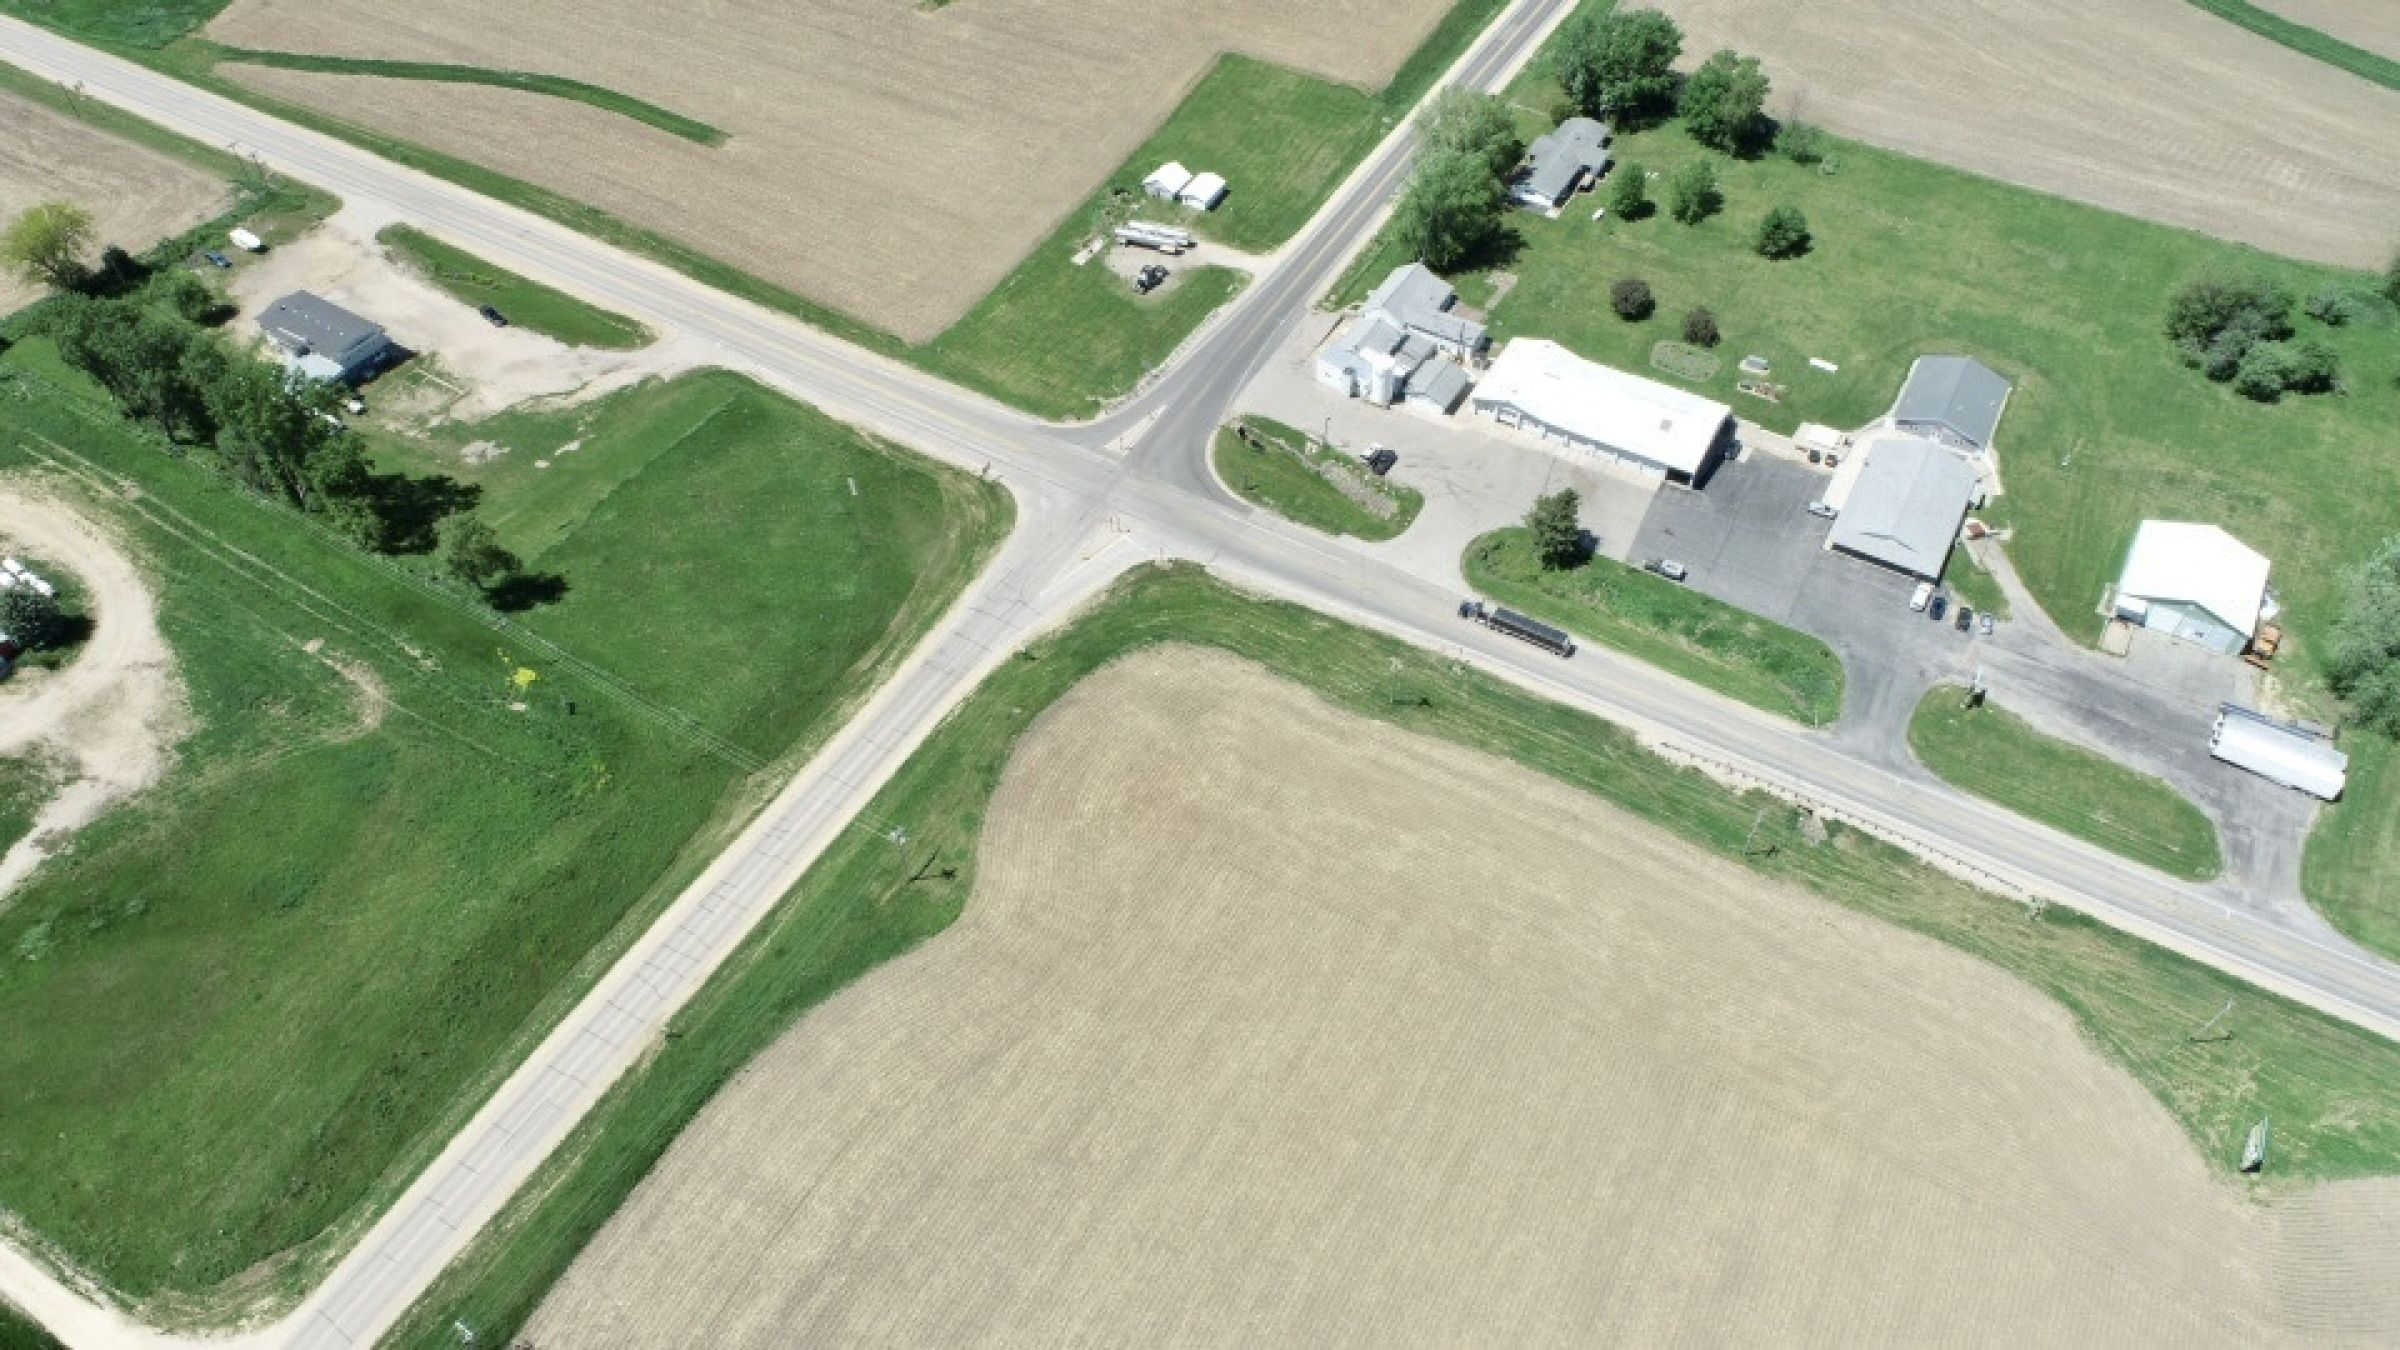 land-commercial-lafayette-county-wisconsin-1-acres-listing-number-15560-8-2021-05-28-185524.jpg